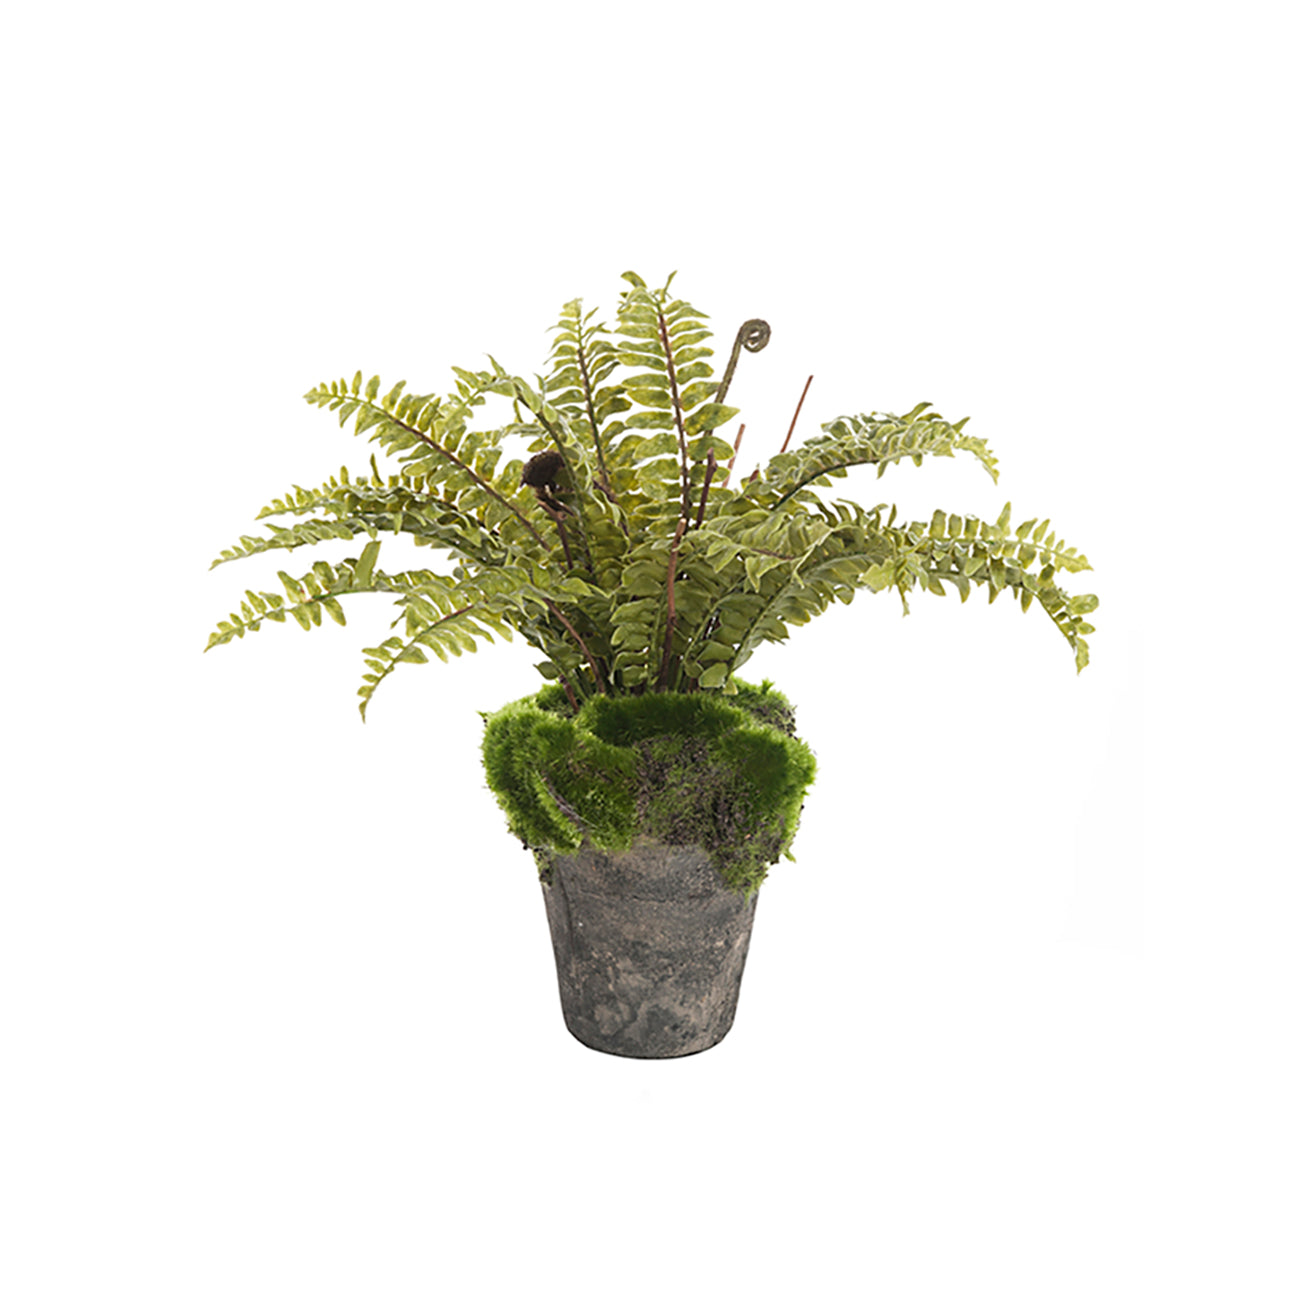 Faux fern plant by Sophie Allport